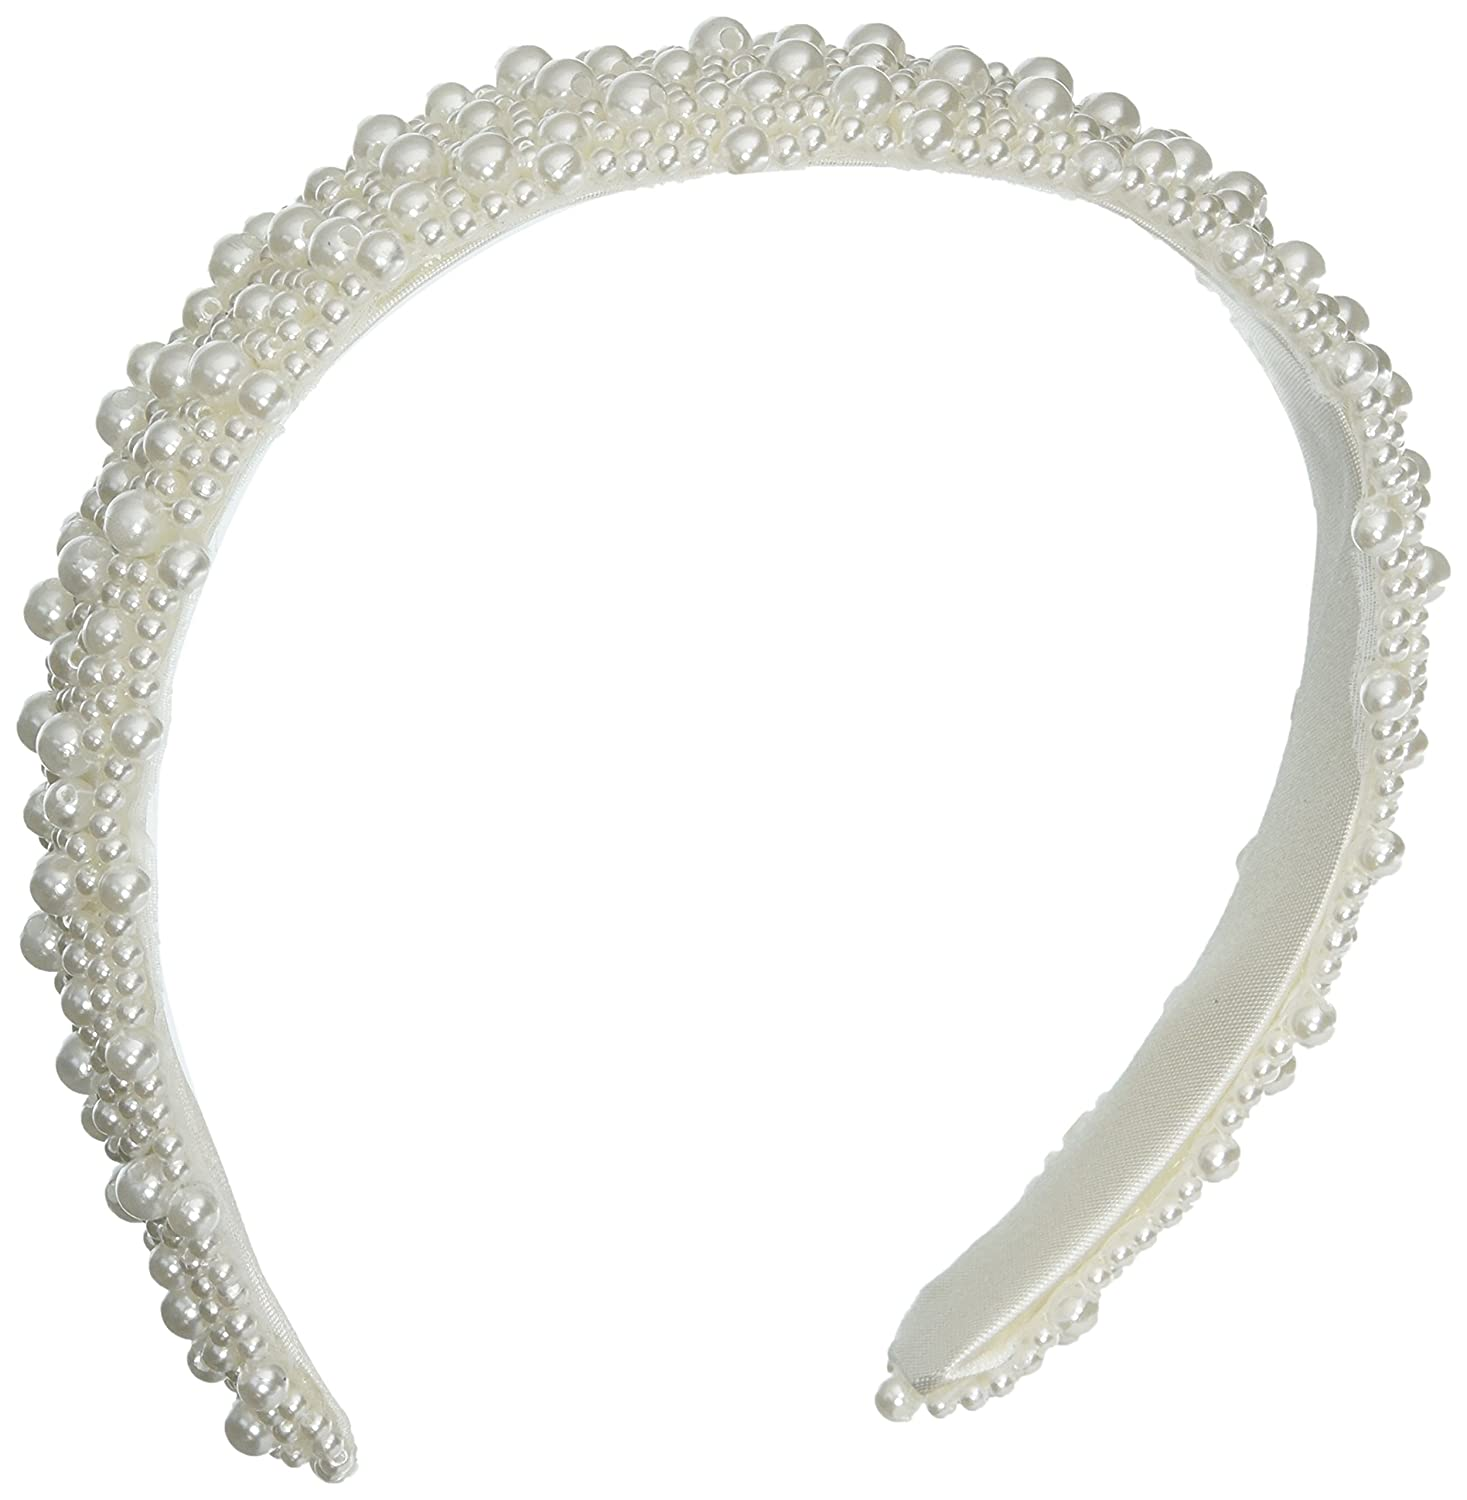 Darice V35231-01 Pearl Beaded Bridal Headband, White, 1-Inch